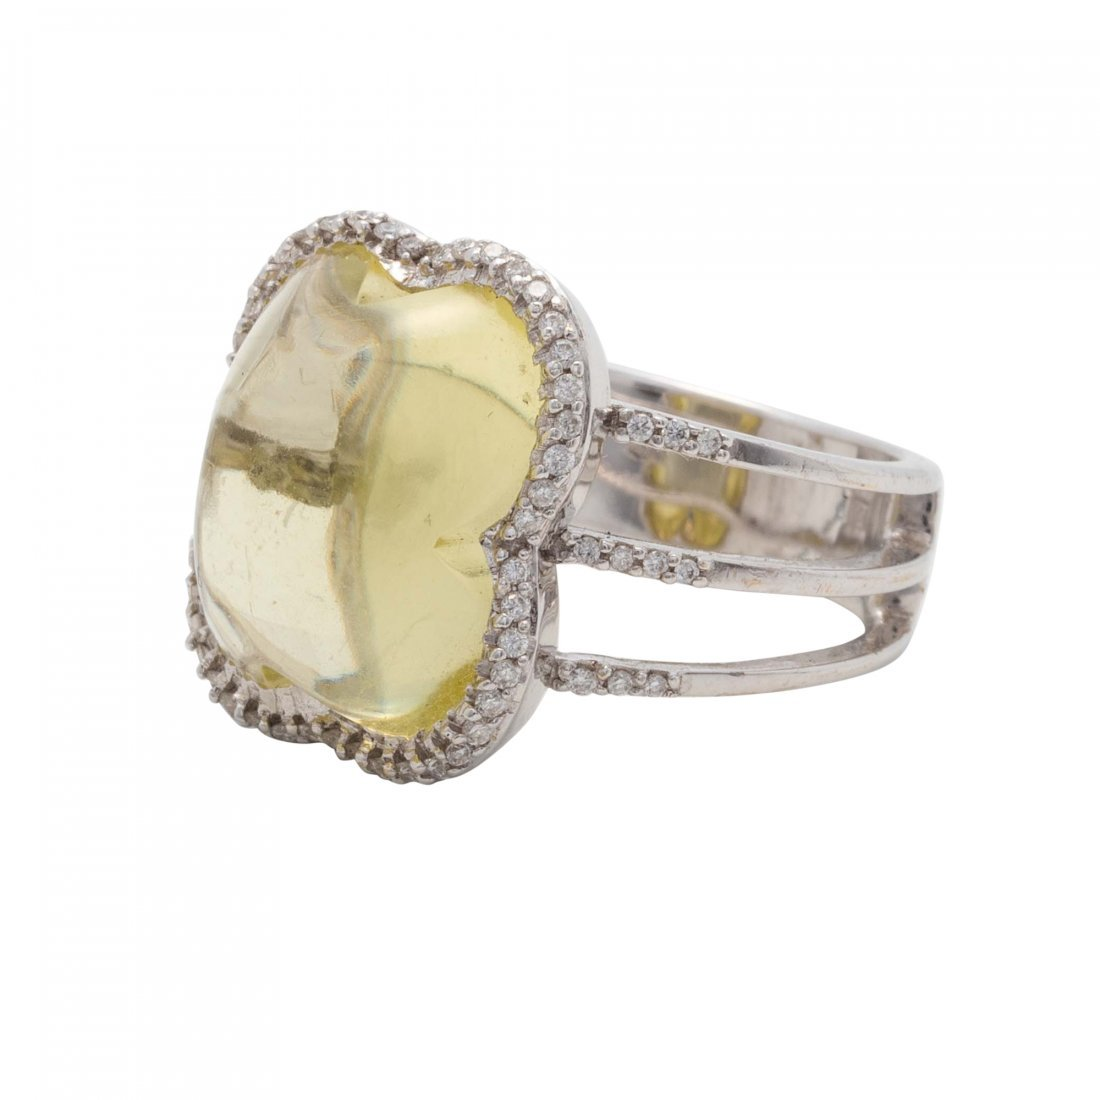 Colored Stone and Diamond Ring - 2